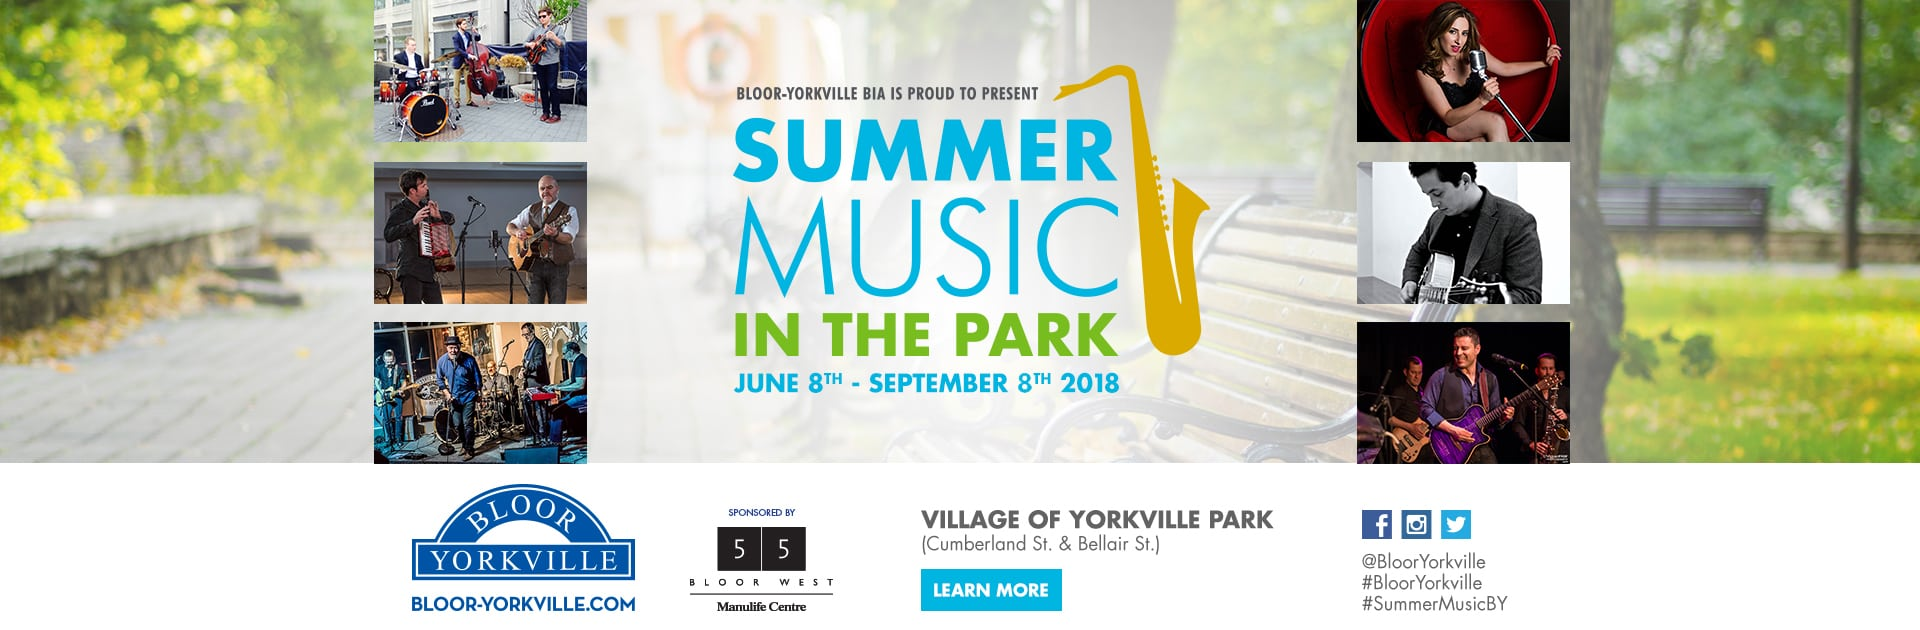 Summer Music in the Park Continues until September 8th